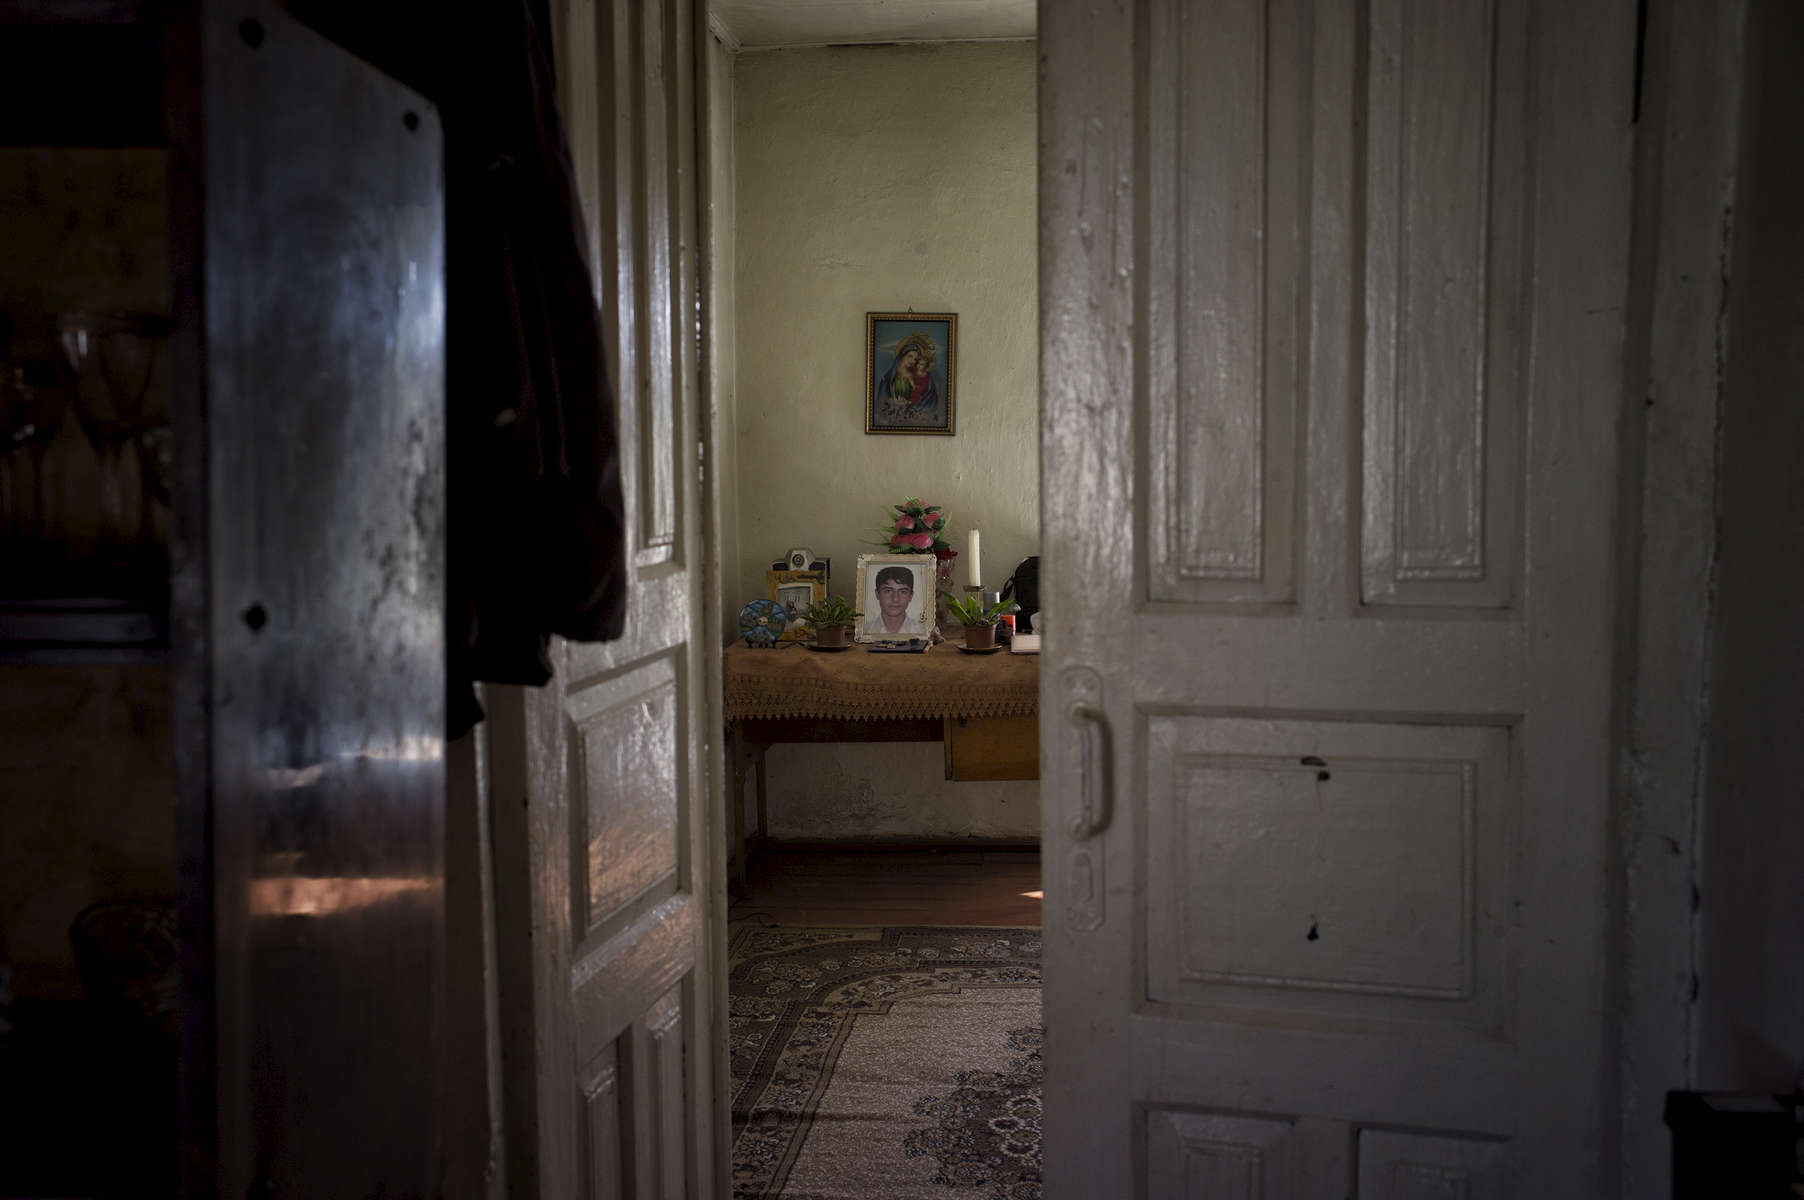 The mother of 14 year-old Gor Davidi Vanyan (I am a monster and have forgotten her name.  Is it Anoush?), who was killed while playing with a SA 12.7 mm, sits in her home in Haterk village.